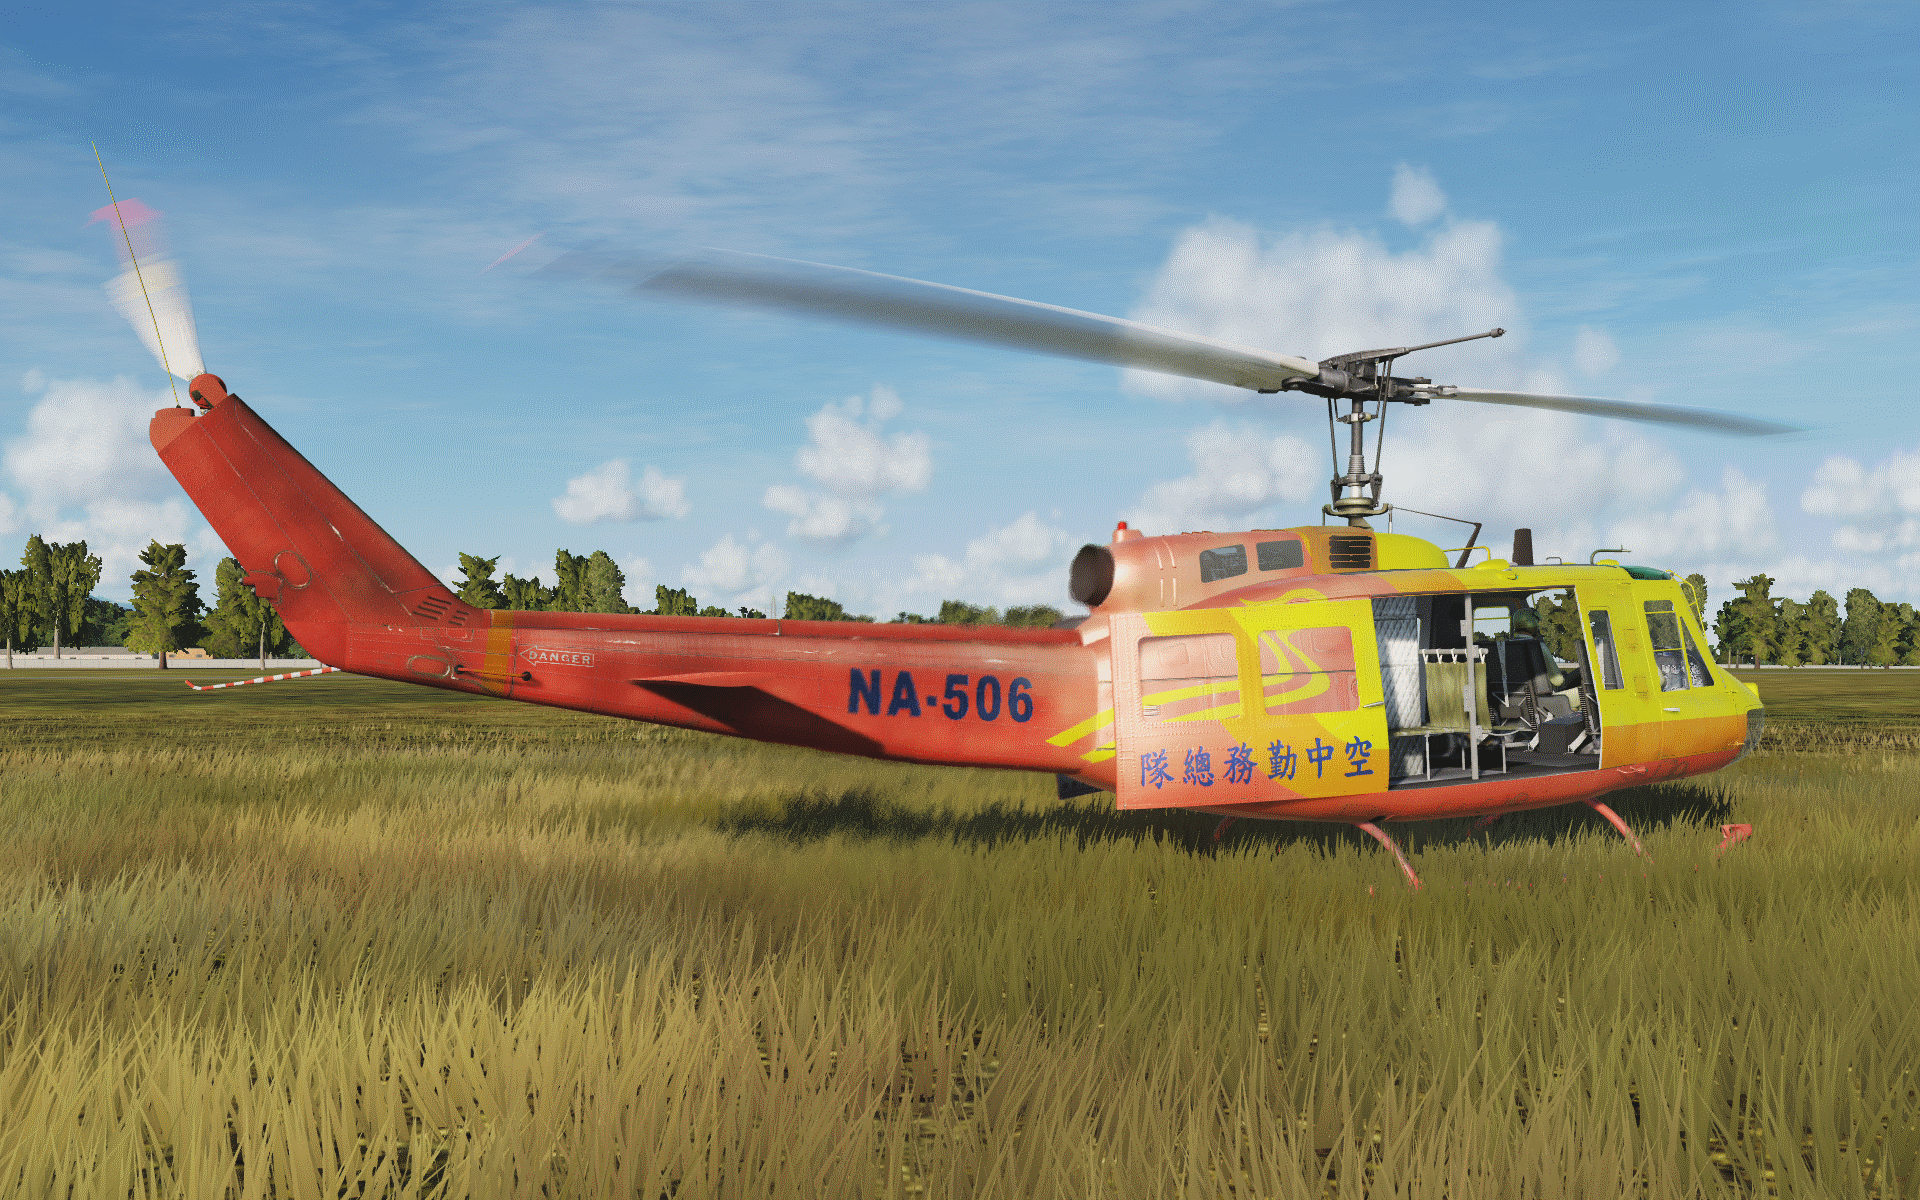 UH-1H Taiwan National Airborne Service Corps(NASC) 空中勤務總隊 NA-506